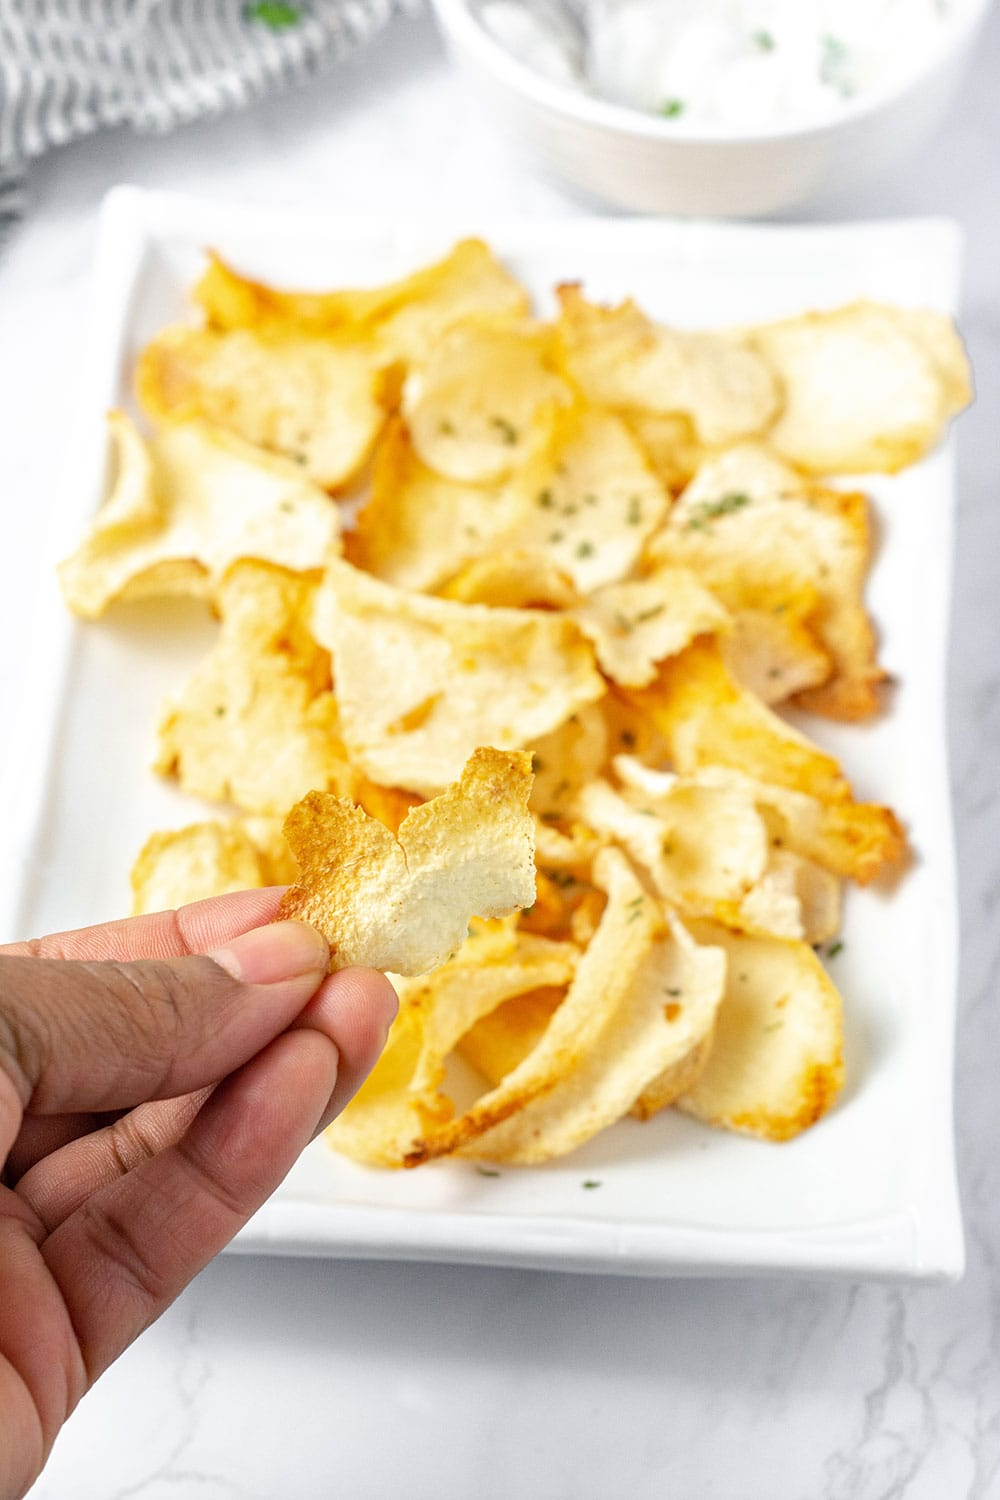 holding crispy jicama chips over a platter of chips on a white plate